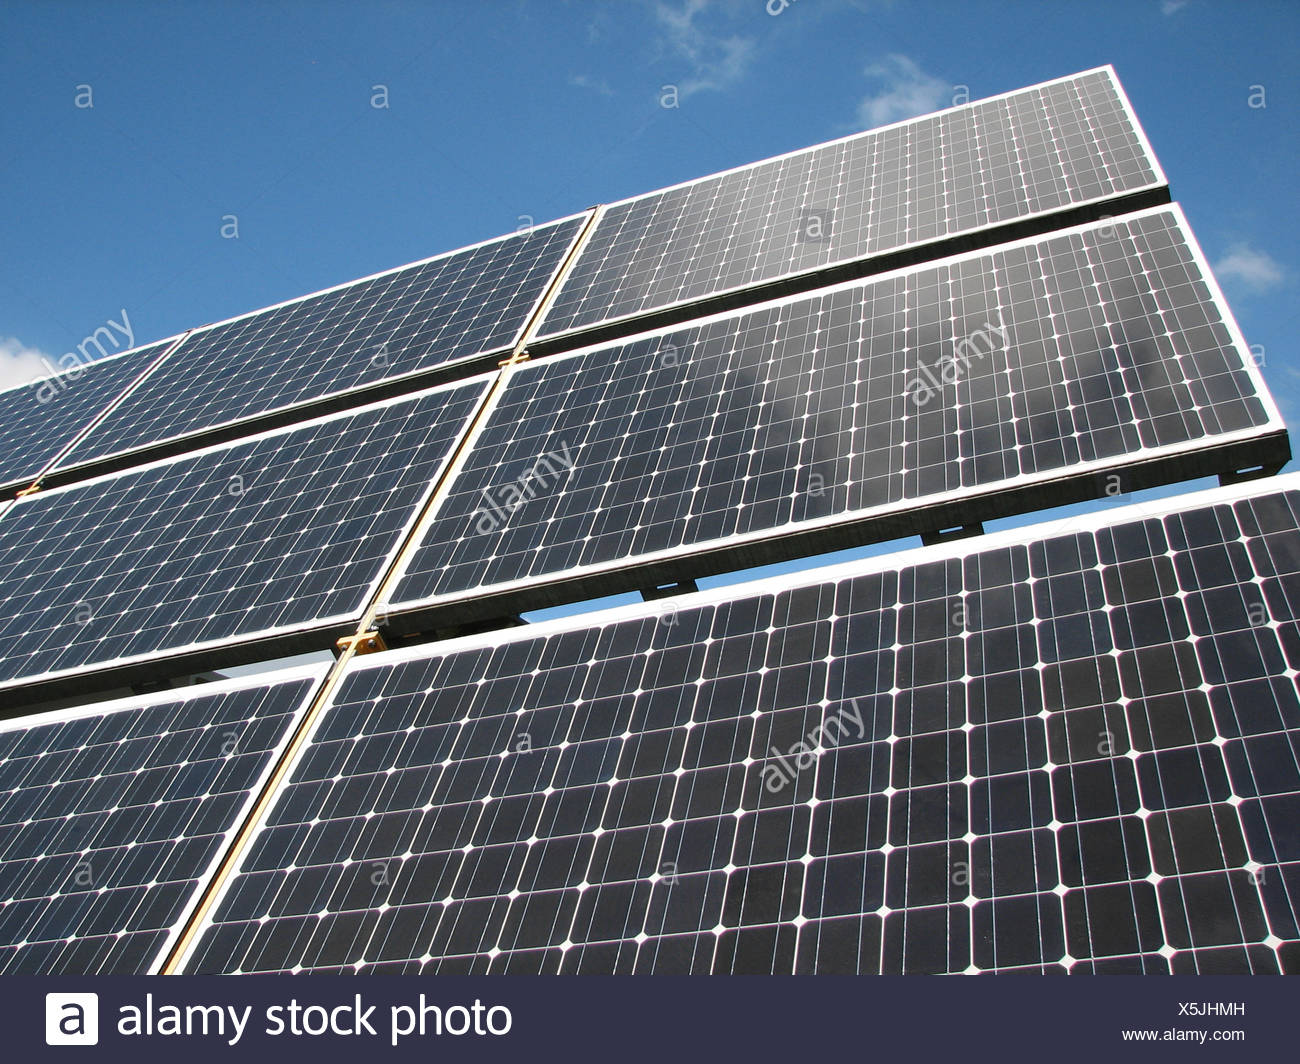 solar,solar panel,photovoltaic system - Stock Image